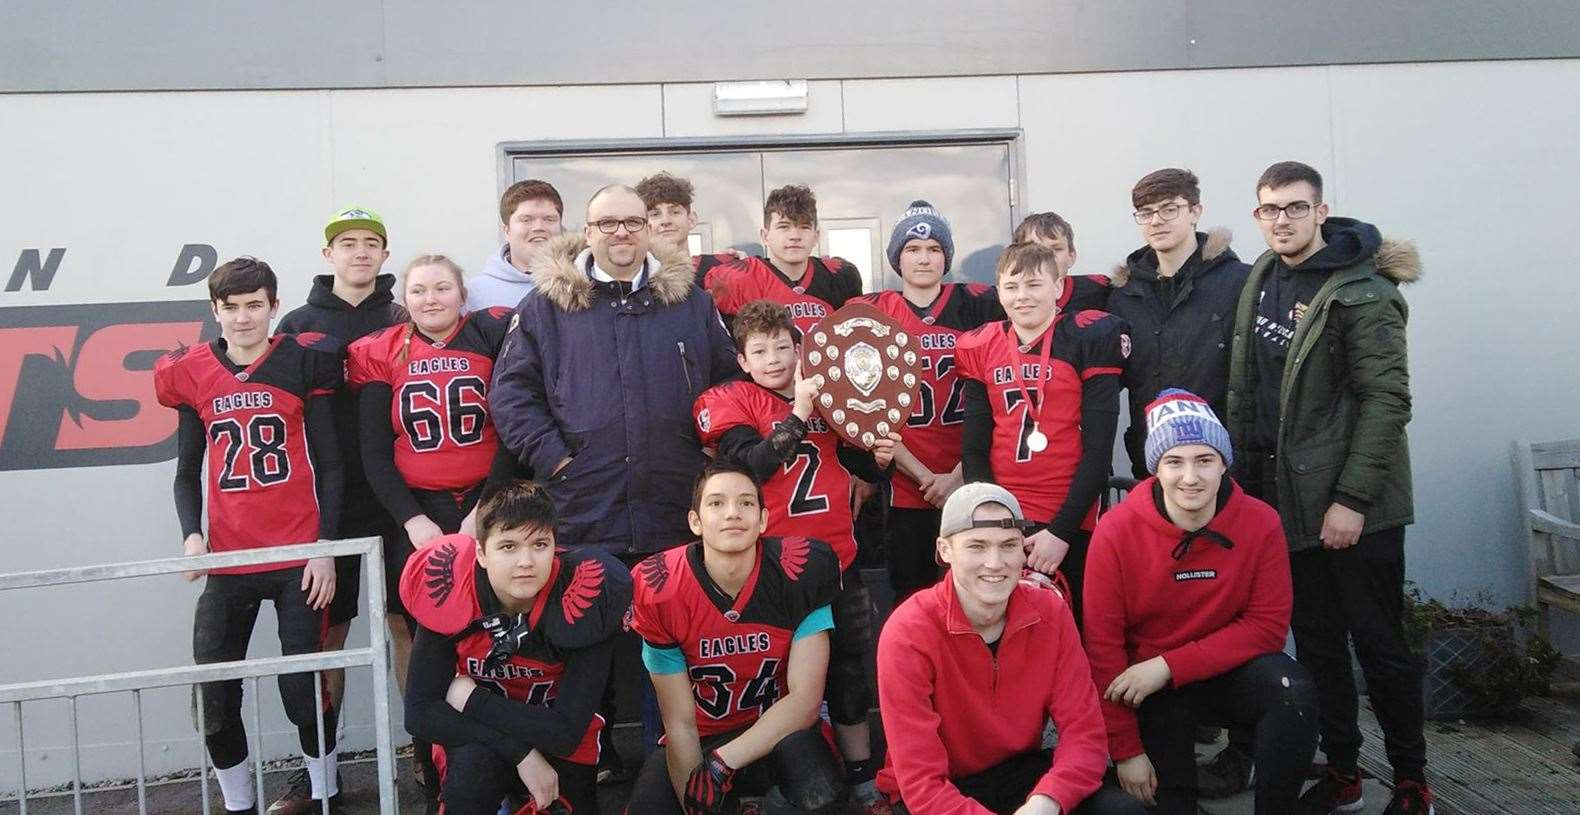 Tim Glews from Reach Digital Telecoms Scotland presents the Millburn Academy Eagles with the Highland Bowl after they beat the Charleston Academy Knights. Picture: Jill Falconer